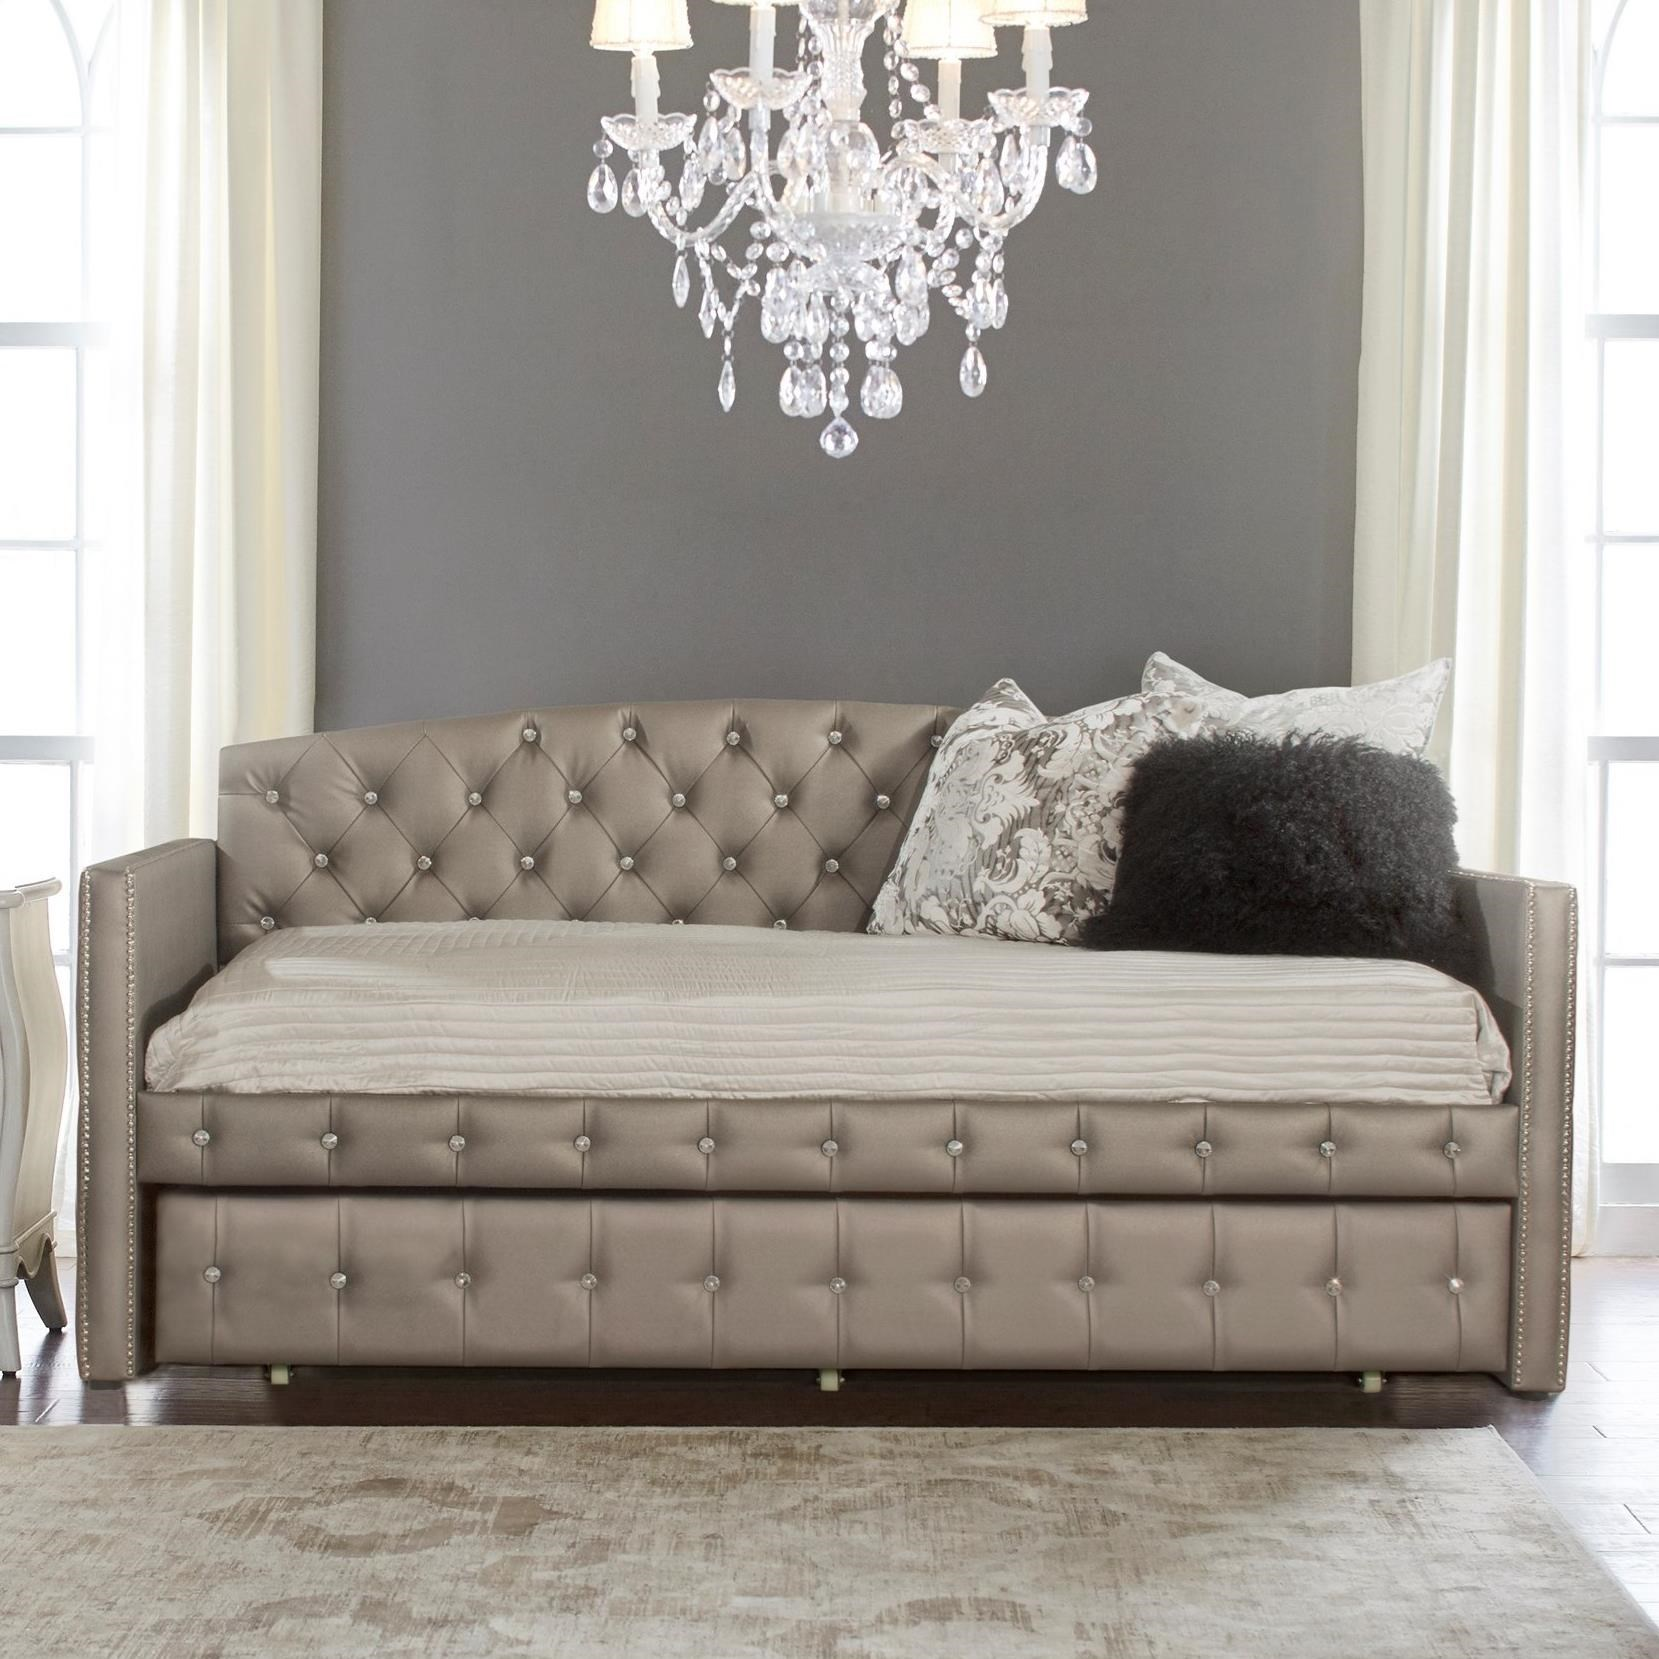 Hillsdale Memphis Bed Upholstered Daybed With Diamond